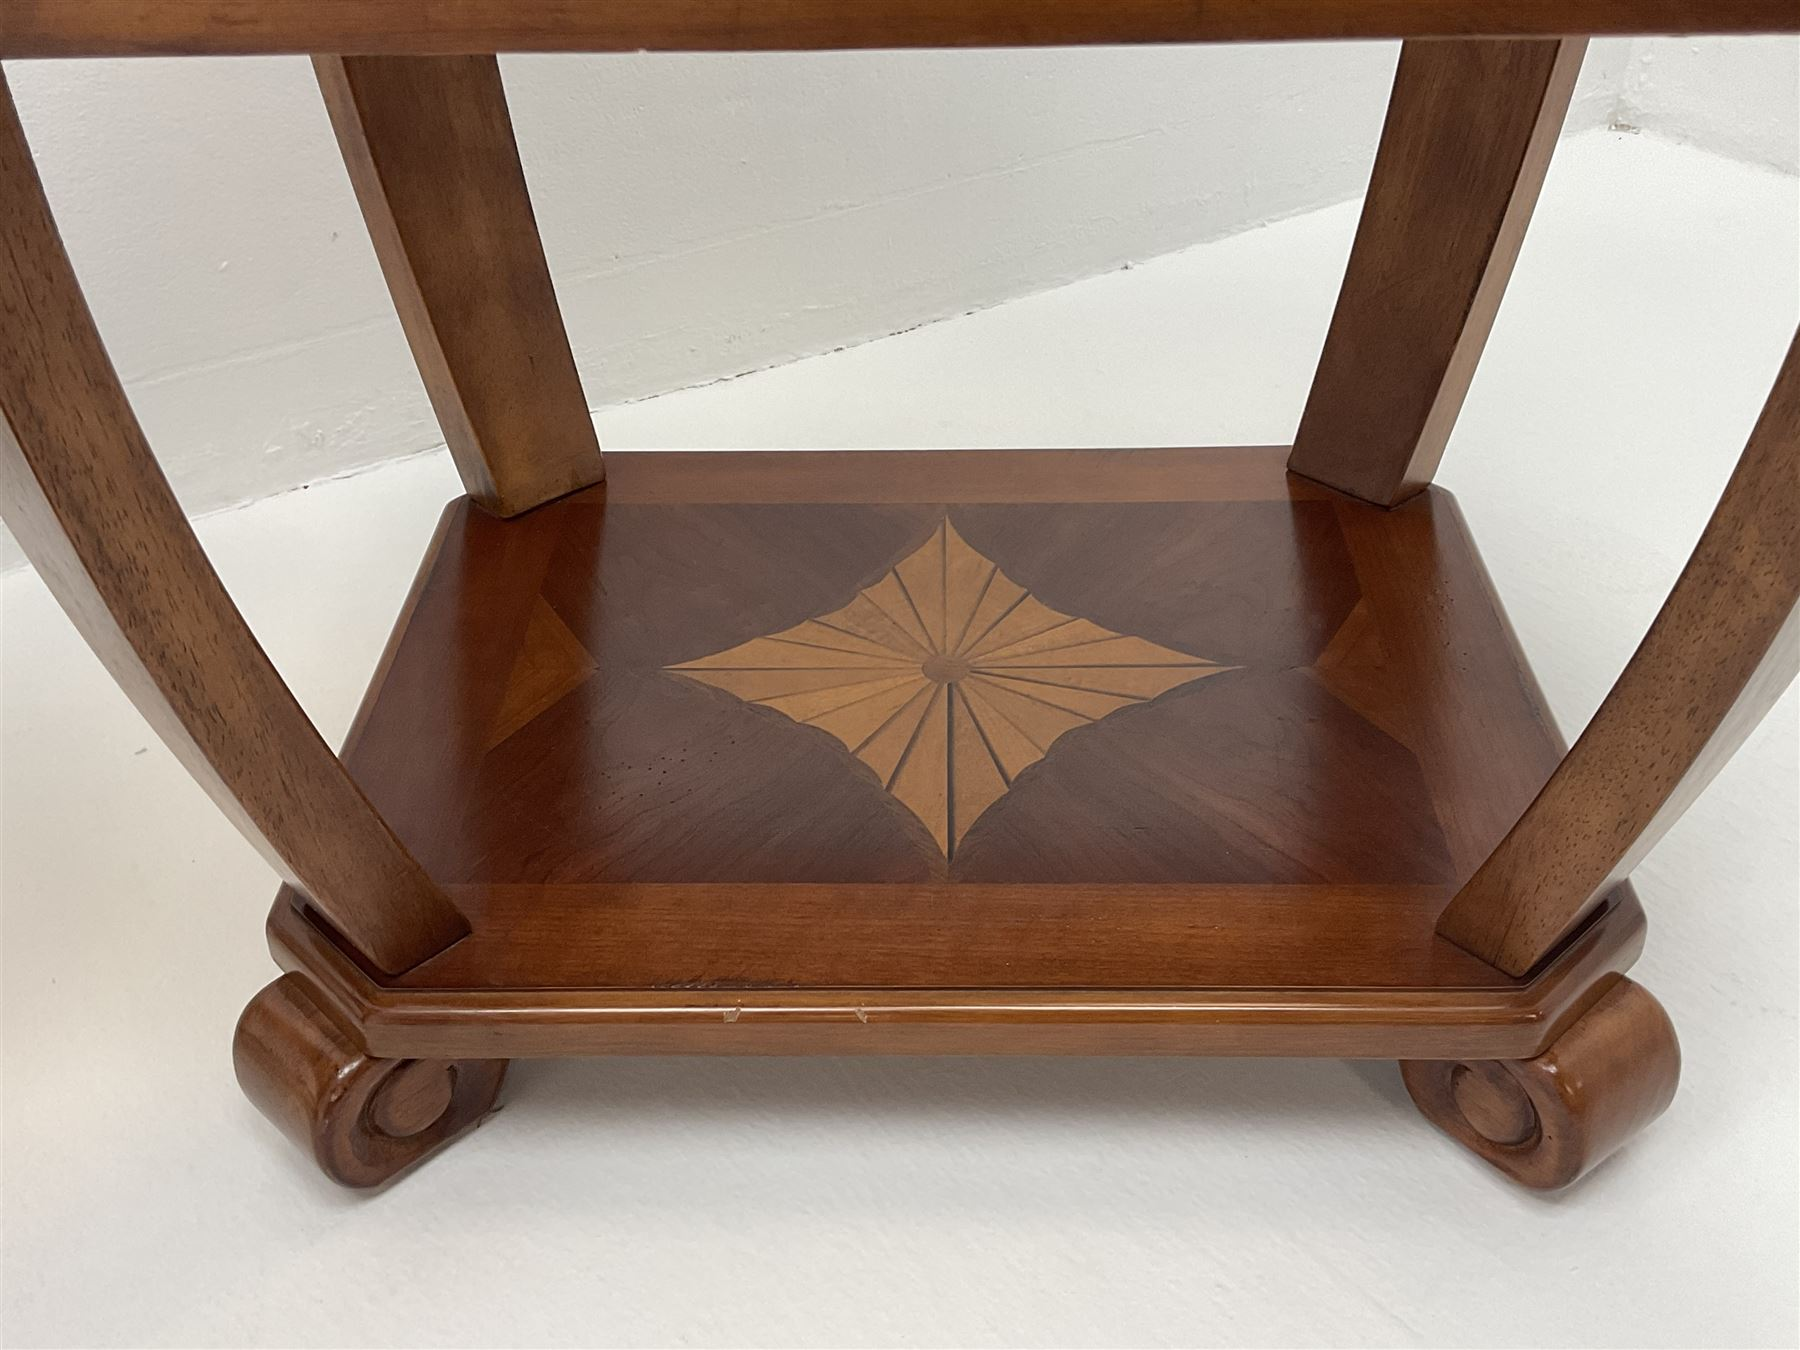 Pair walnut rectangular two tier lamp tables with inset glass tops - Image 4 of 4